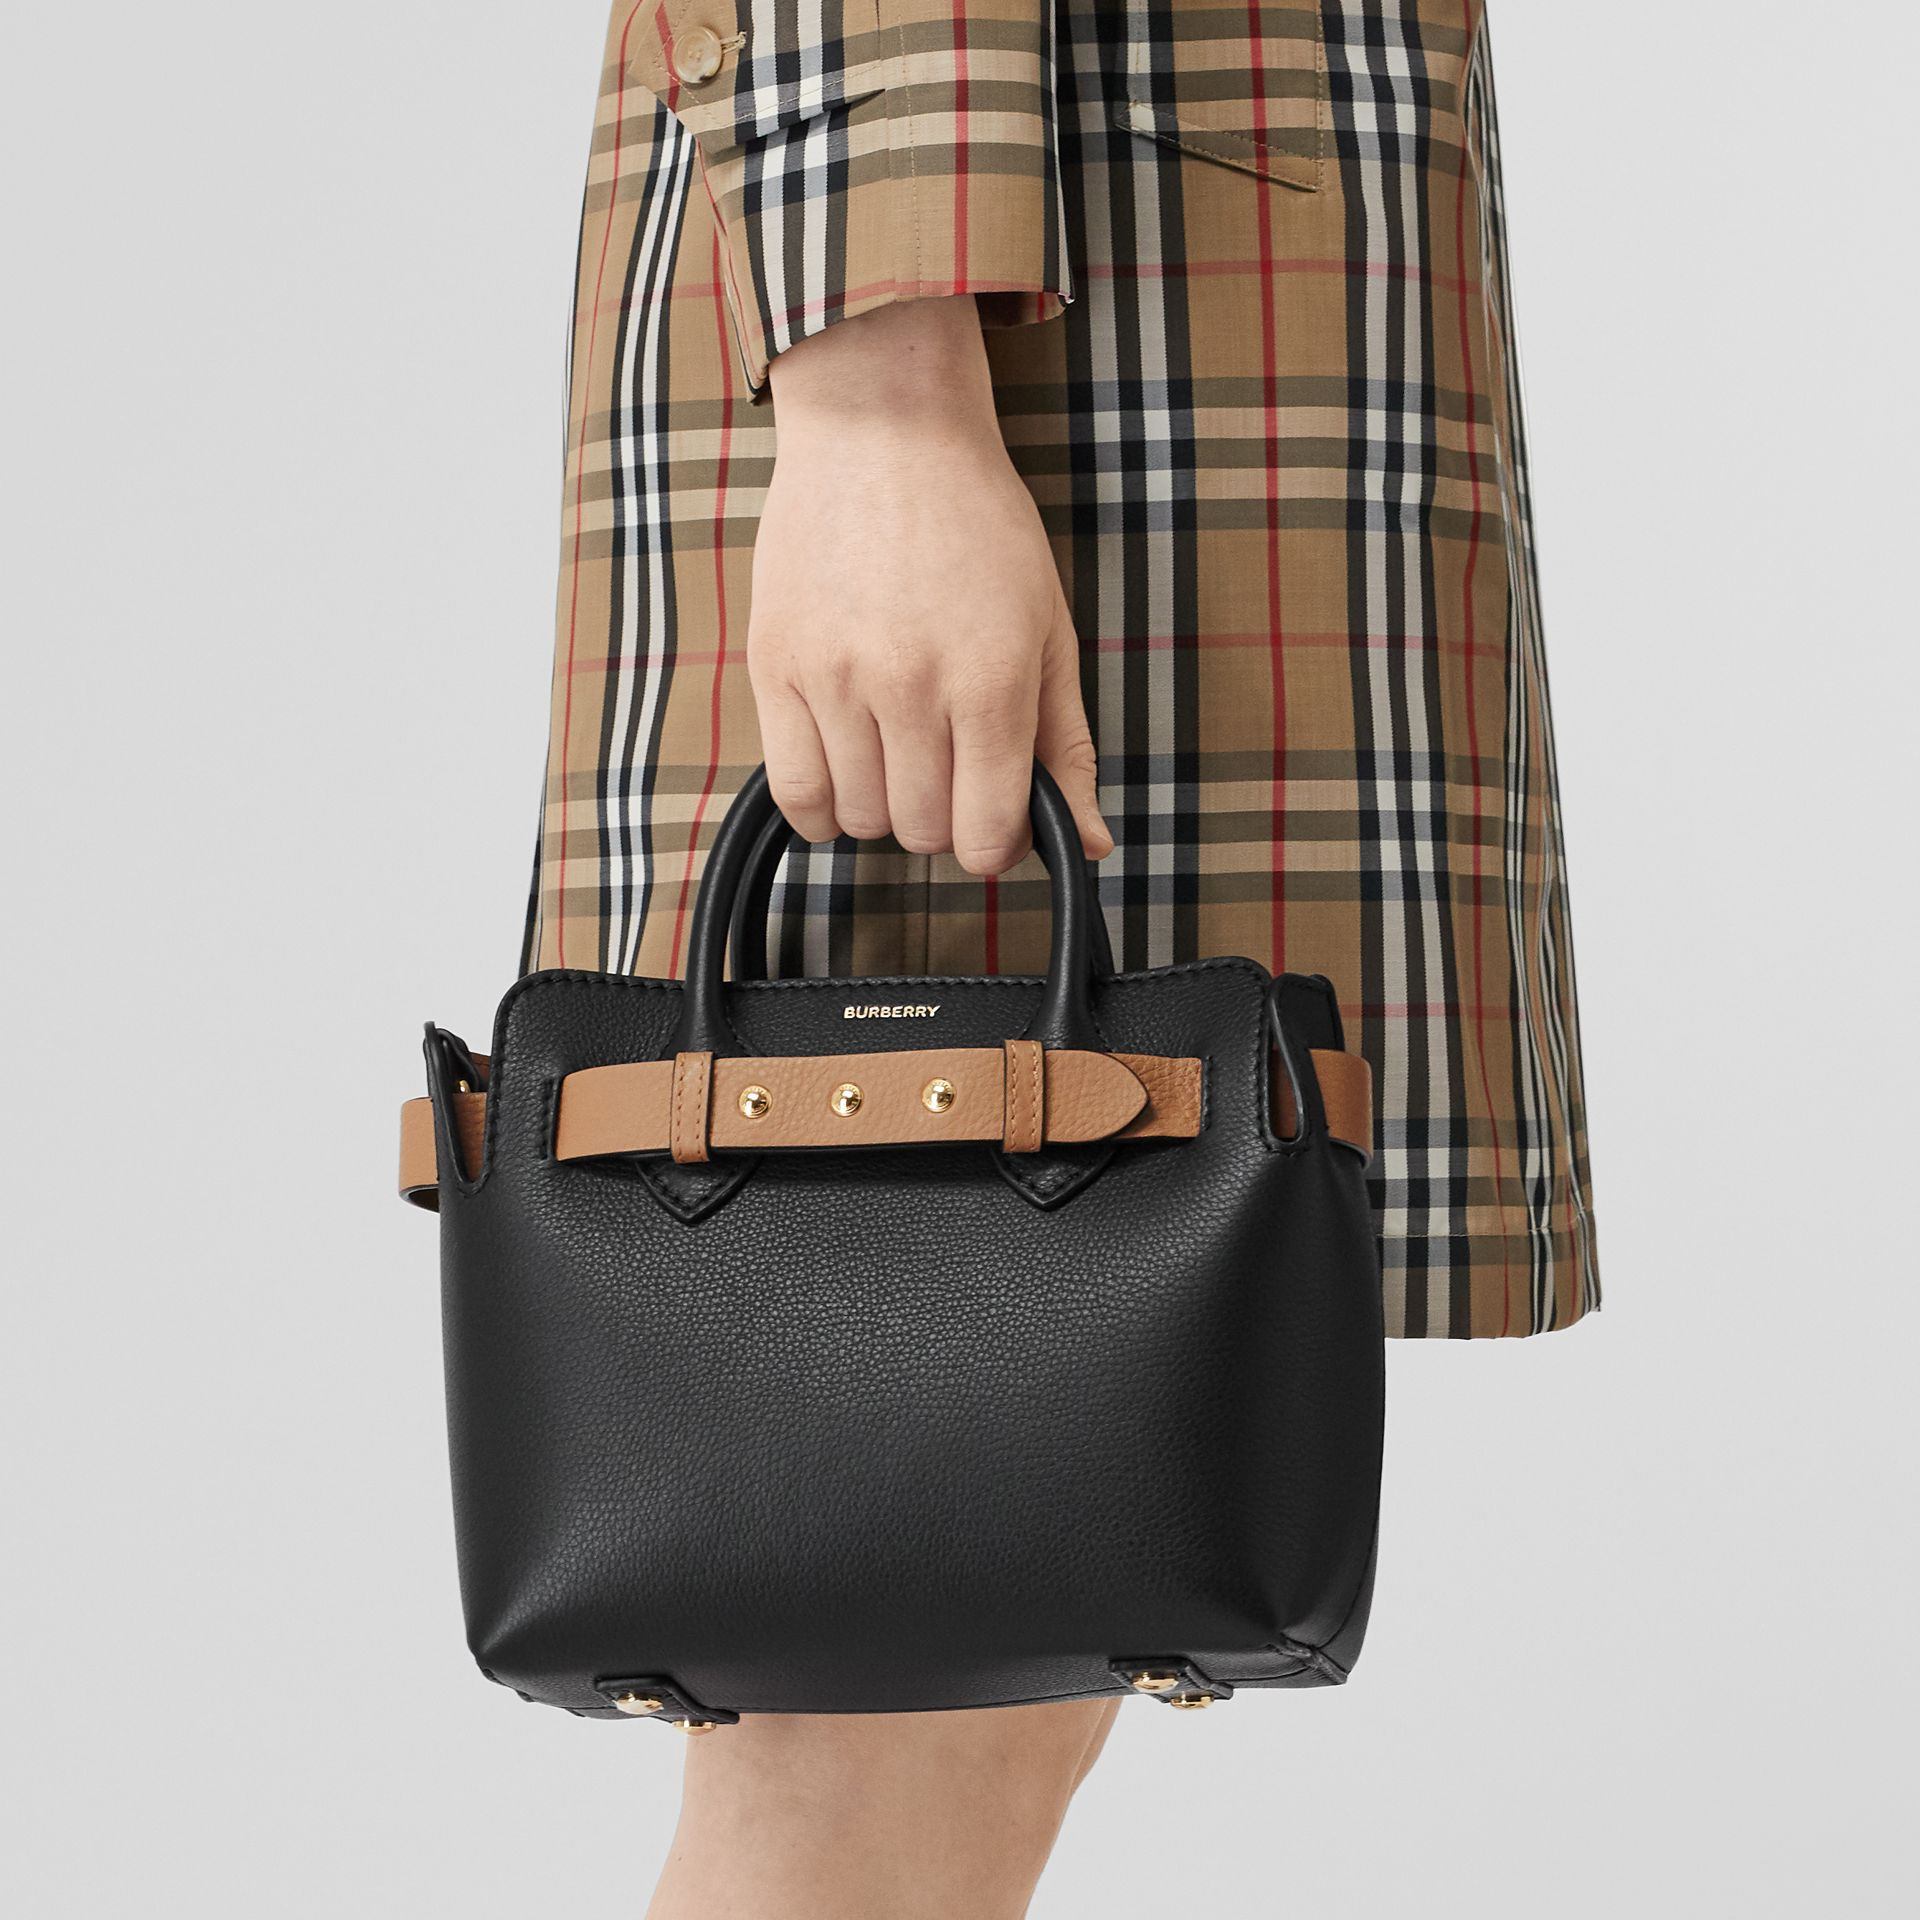 Borsa The Belt mini in pelle con tre borchie (Nero) - Donna | Burberry - immagine della galleria 5